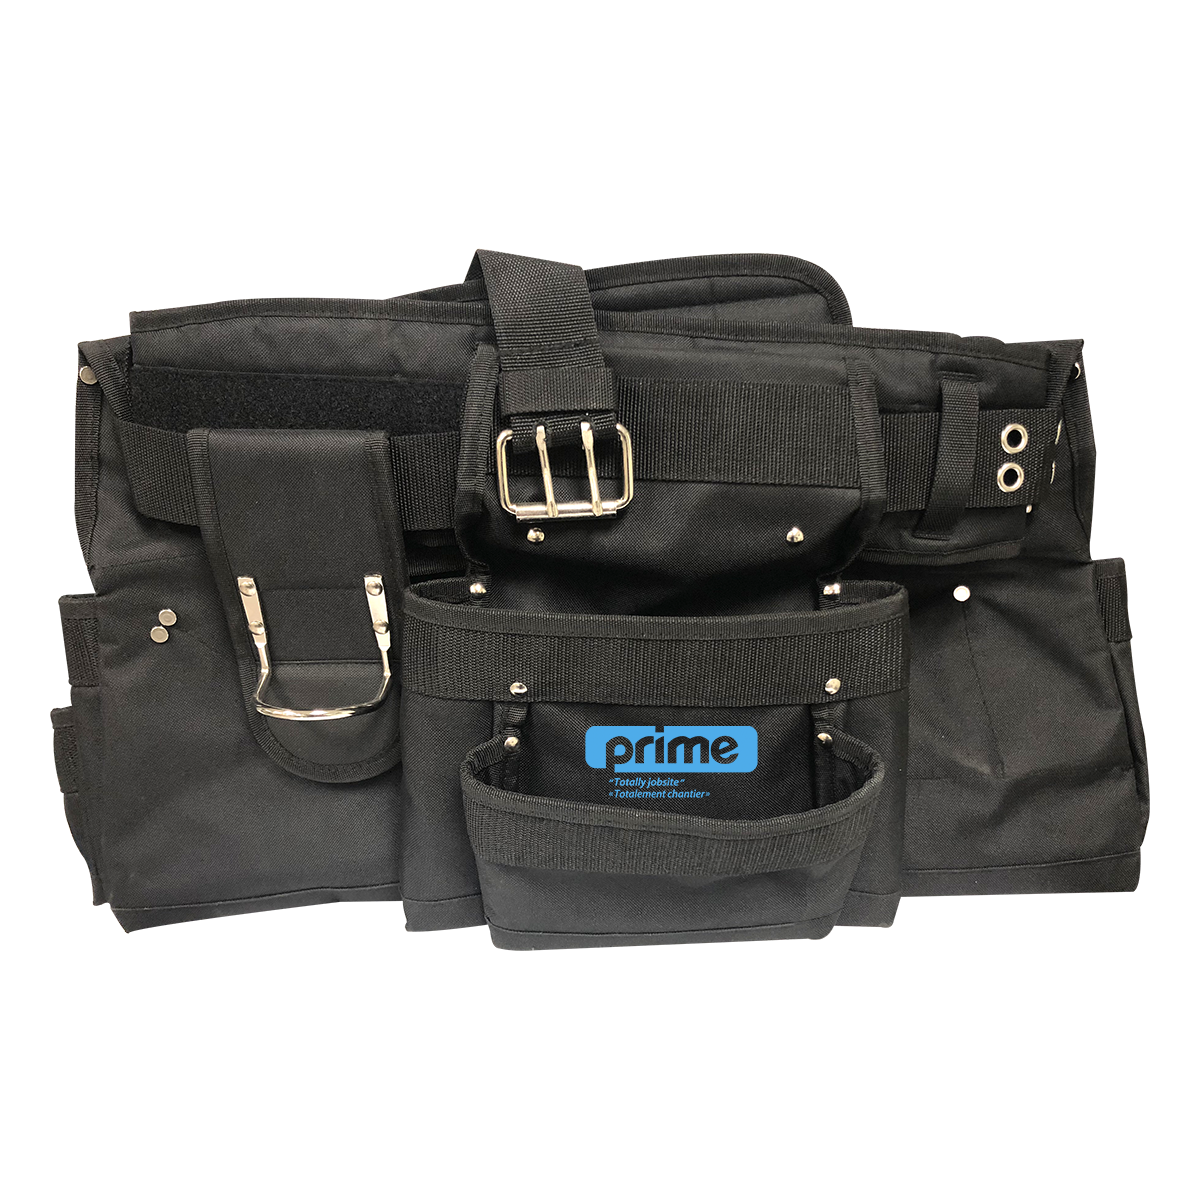 PRIME - 17 POCKET TOOL BELT